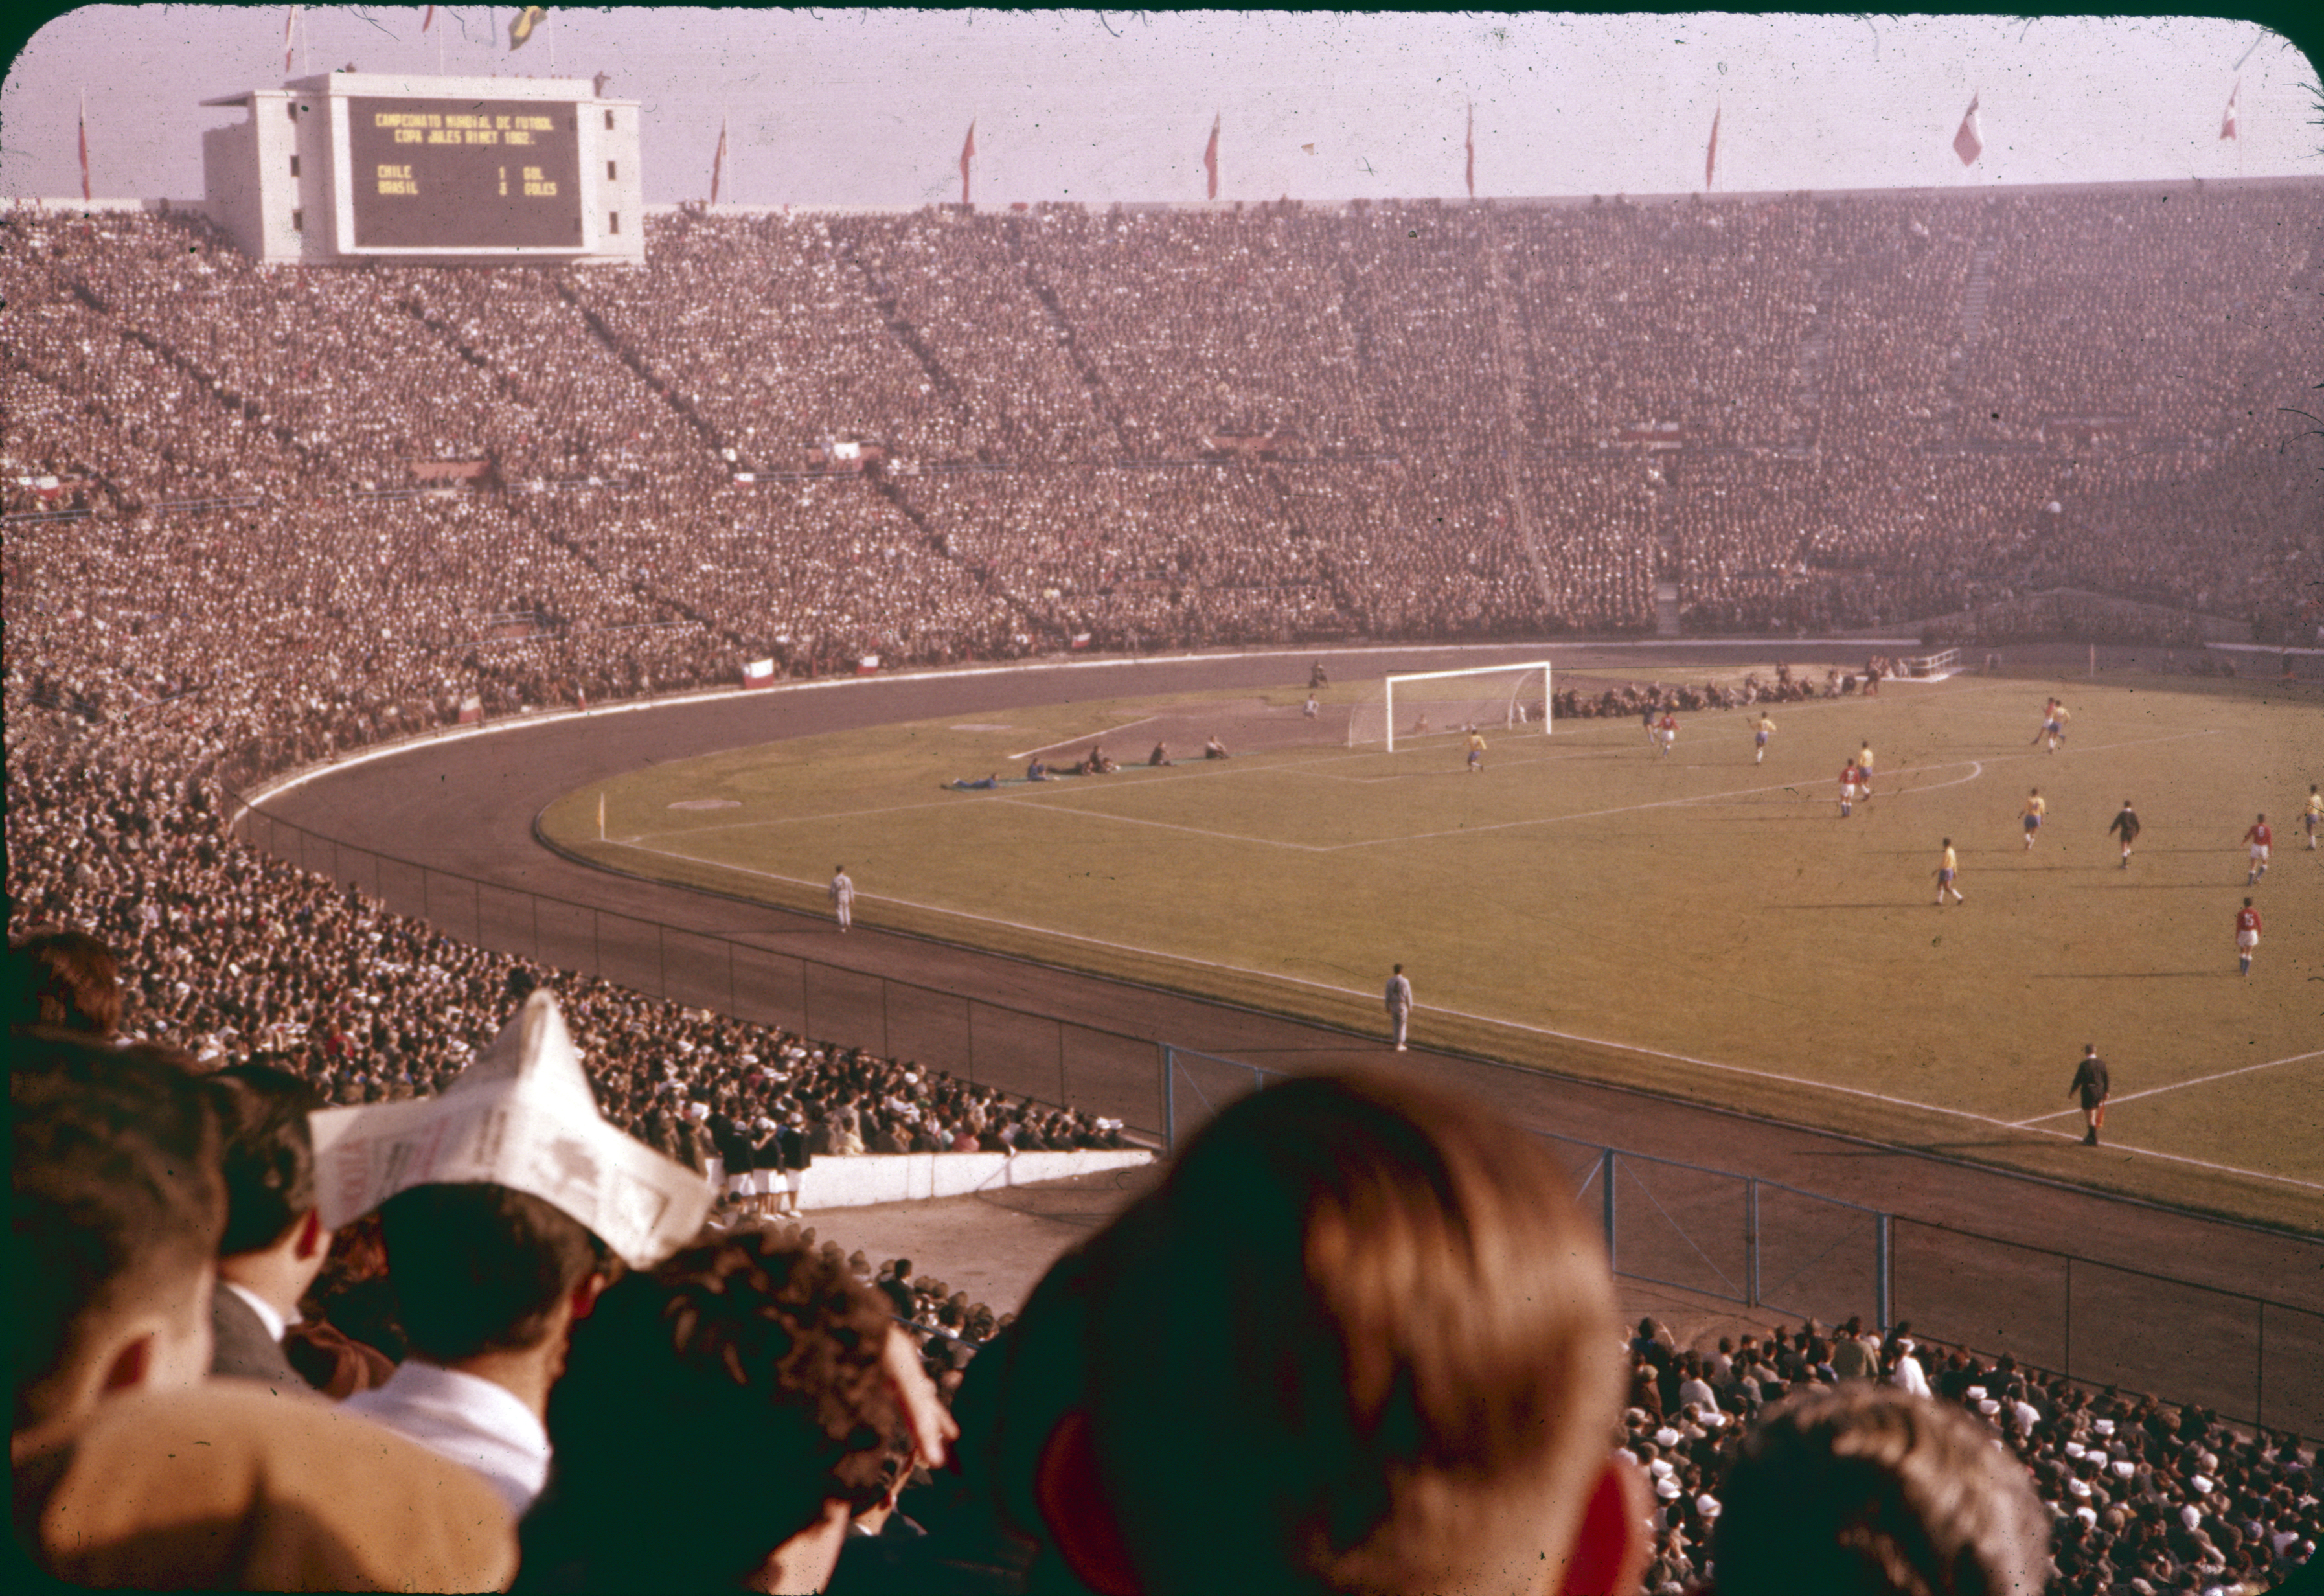 Enterreno - Fotos históricas de chile - fotos antiguas de Chile - Mundial Chile 1962, Estadio Nacional